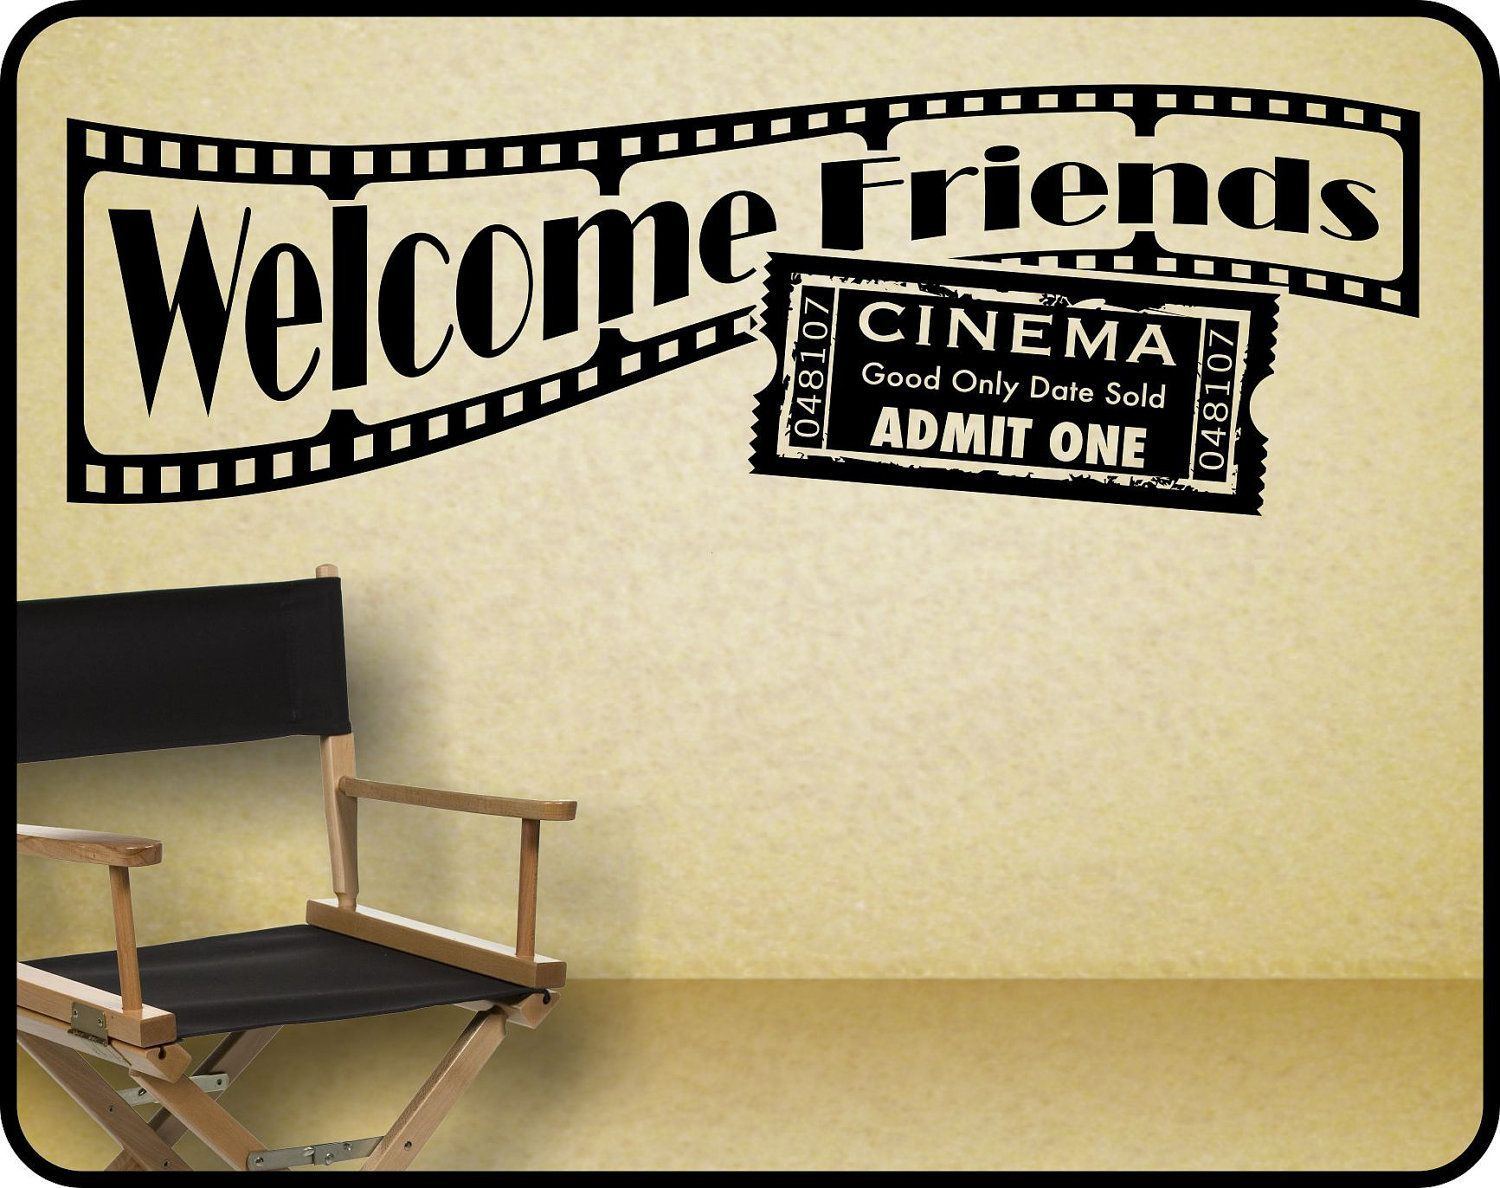 Home theater wall decal sticker decor welcome friends with home theater wall decal sticker decor welcome friends with hollywood movie theme 38 x 12 amipublicfo Images